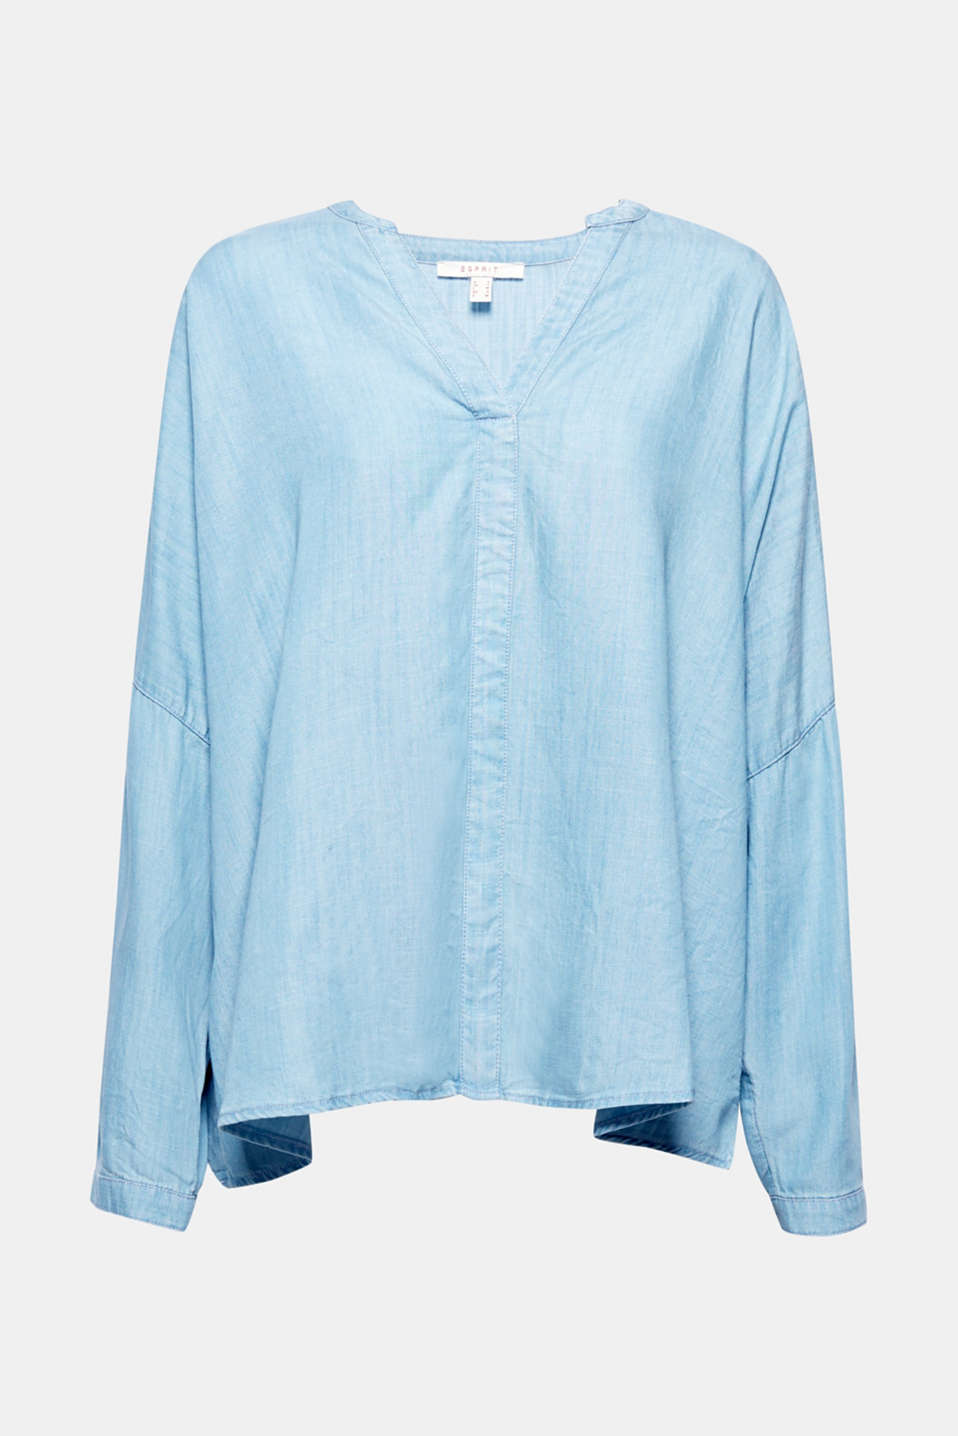 A stylish denim look and casual fit: this boxy and wide, oversized blouse in a bright denim look is a trendy fashion piece thanks to the turn-up sleeves and Henley neckline.